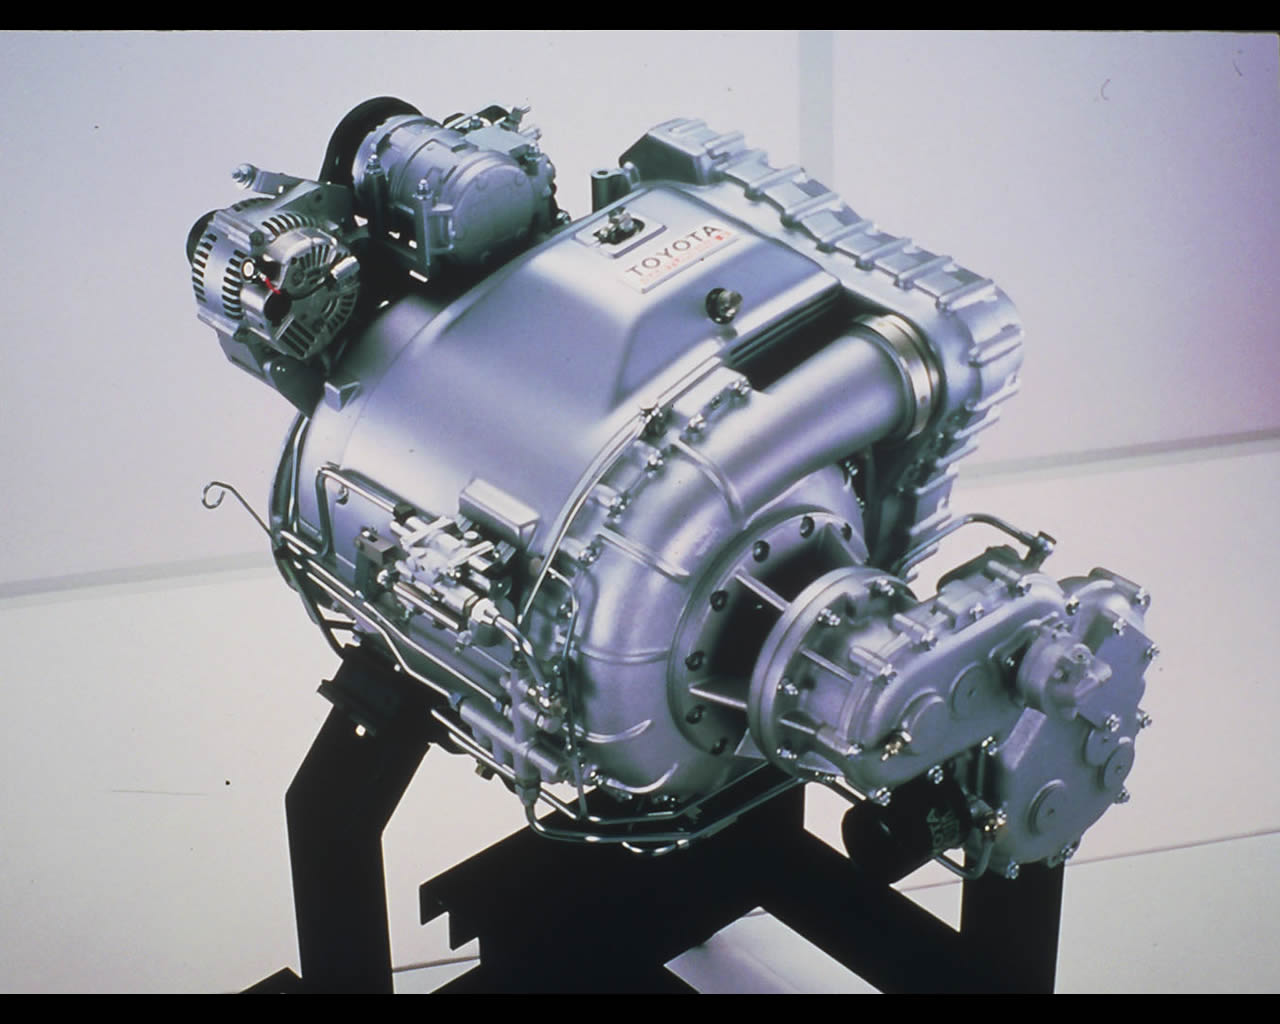 Toyota Gtv Gas Turbine Vehicle 1987